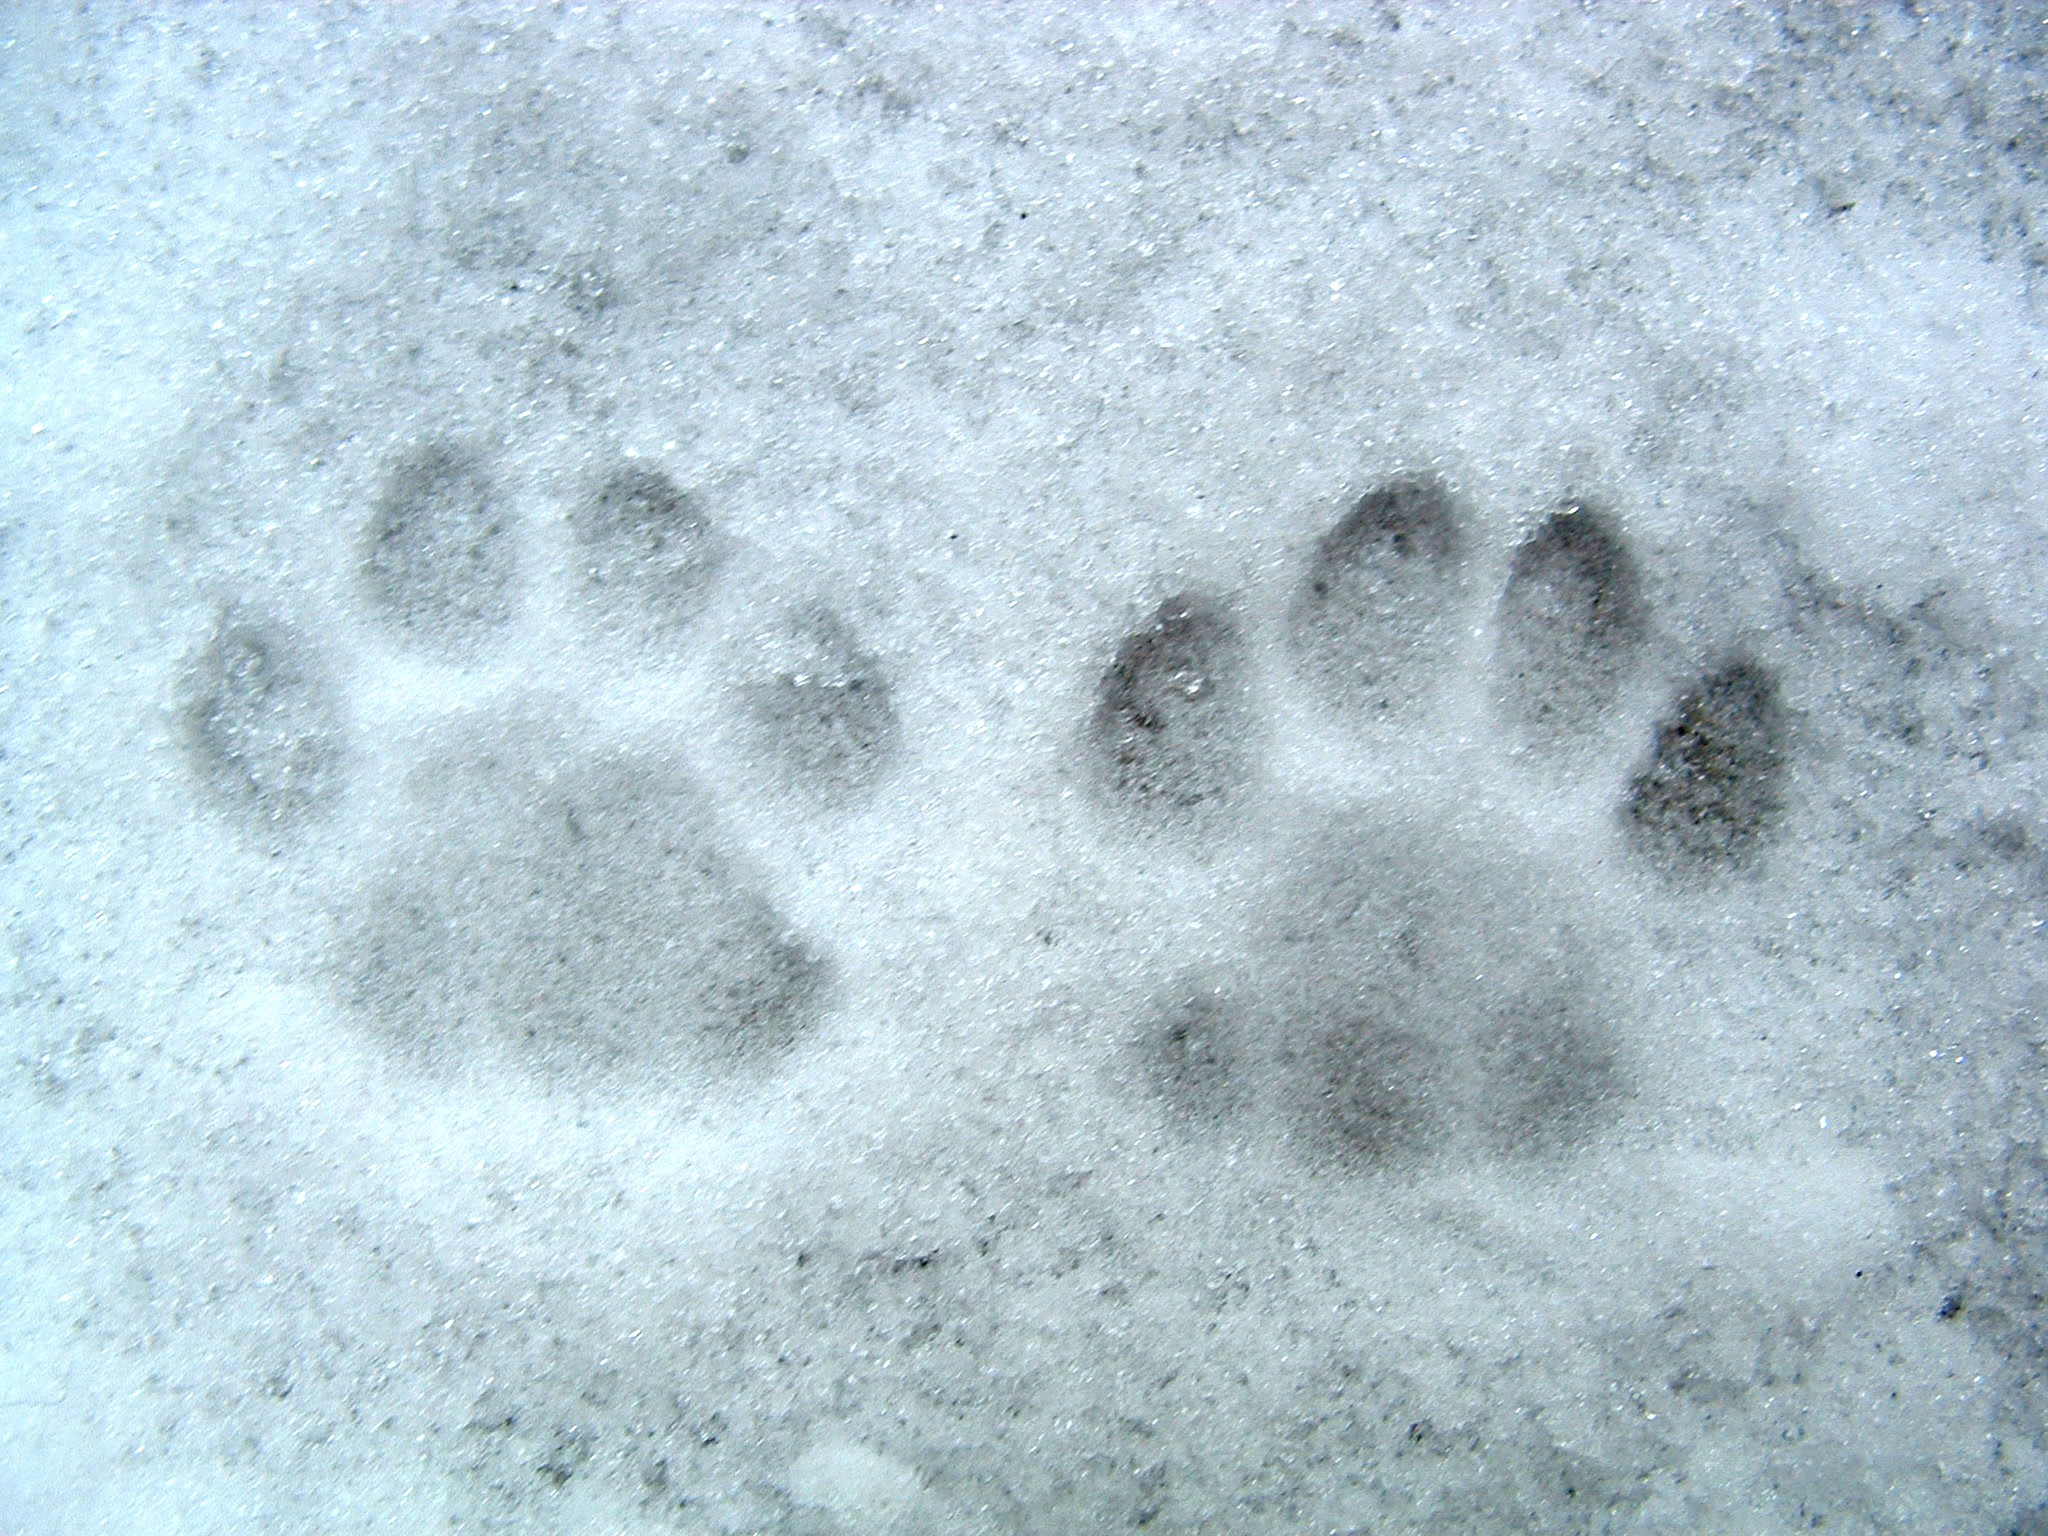 Snow, paw prints